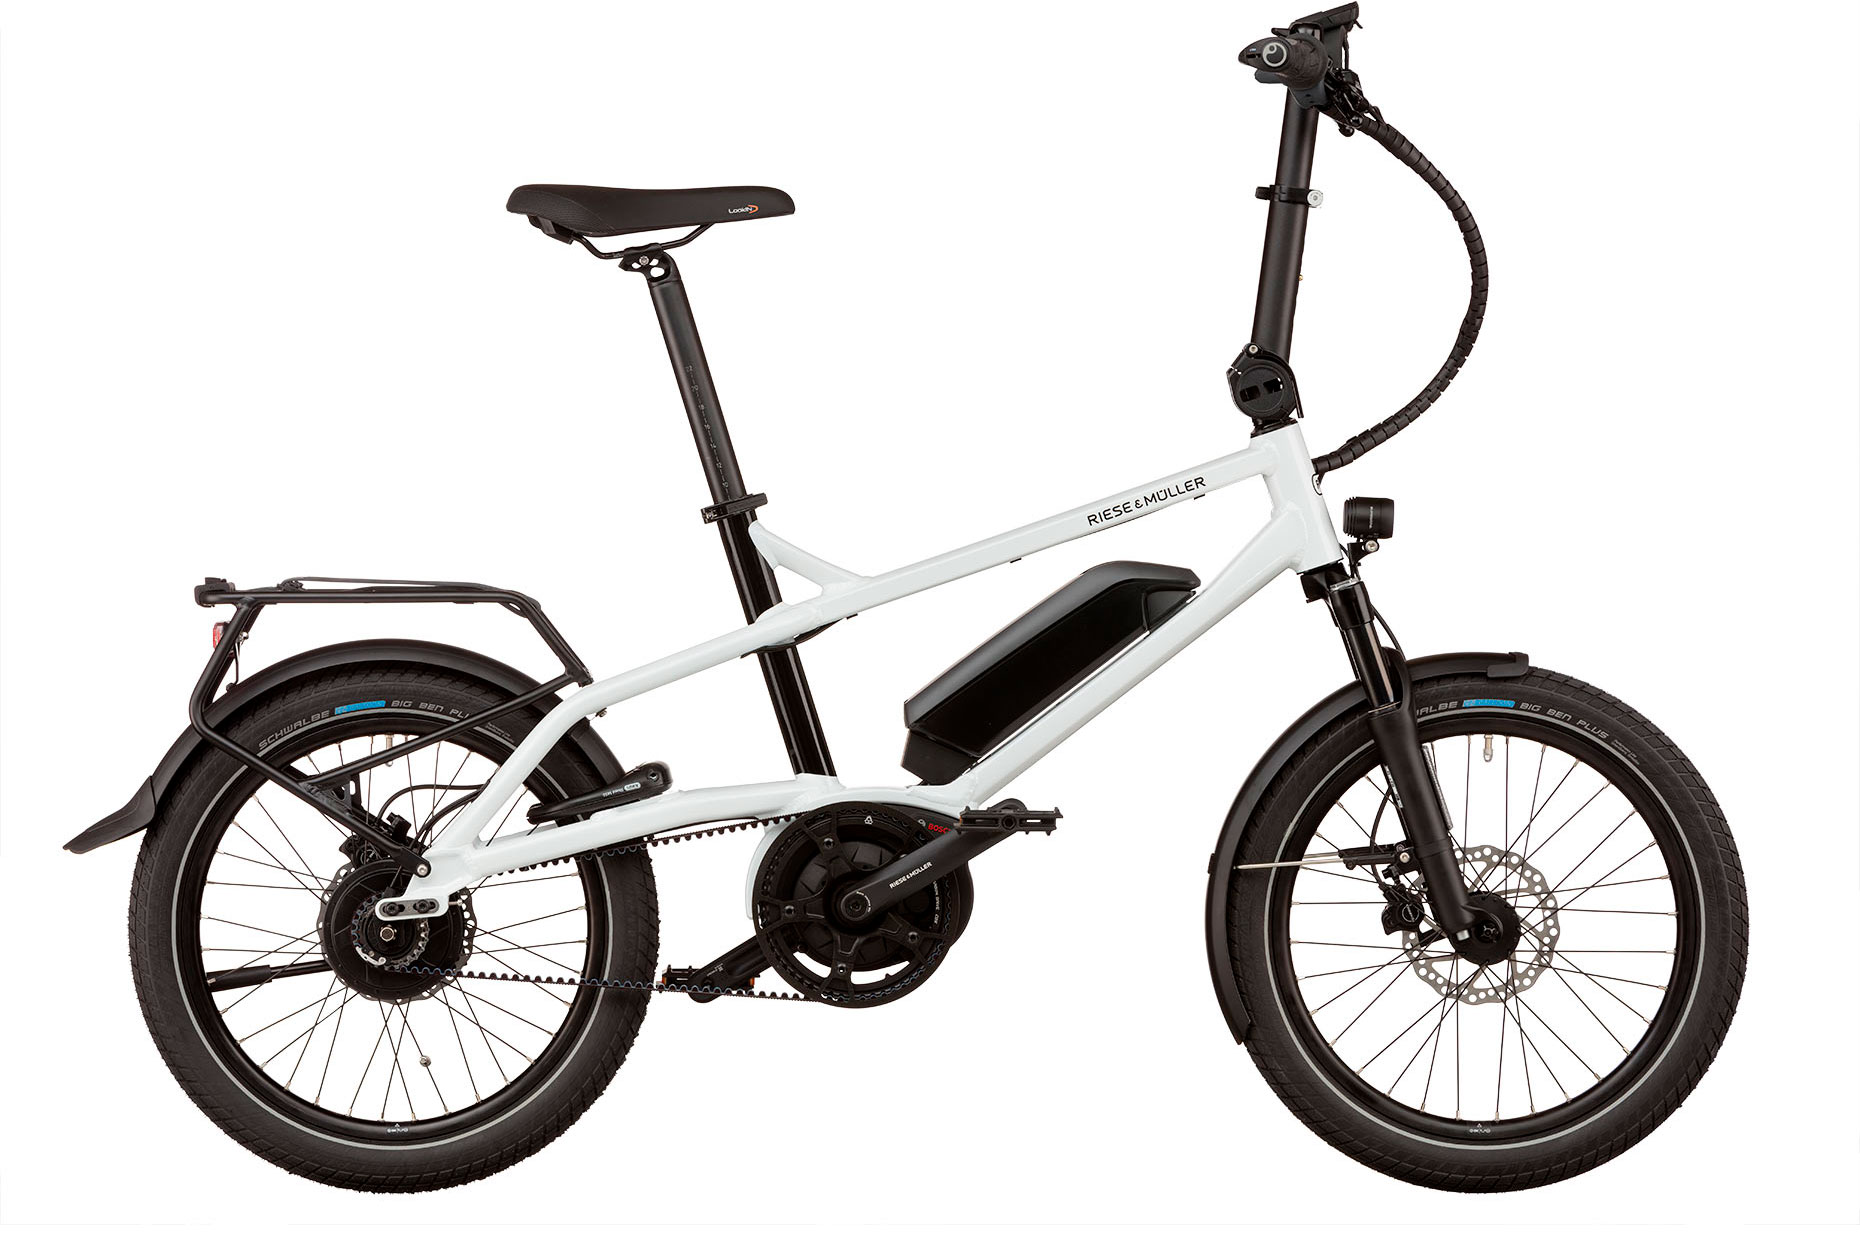 Riese und Müller Tinker Vario - incl. Thudbuster, RX Chip